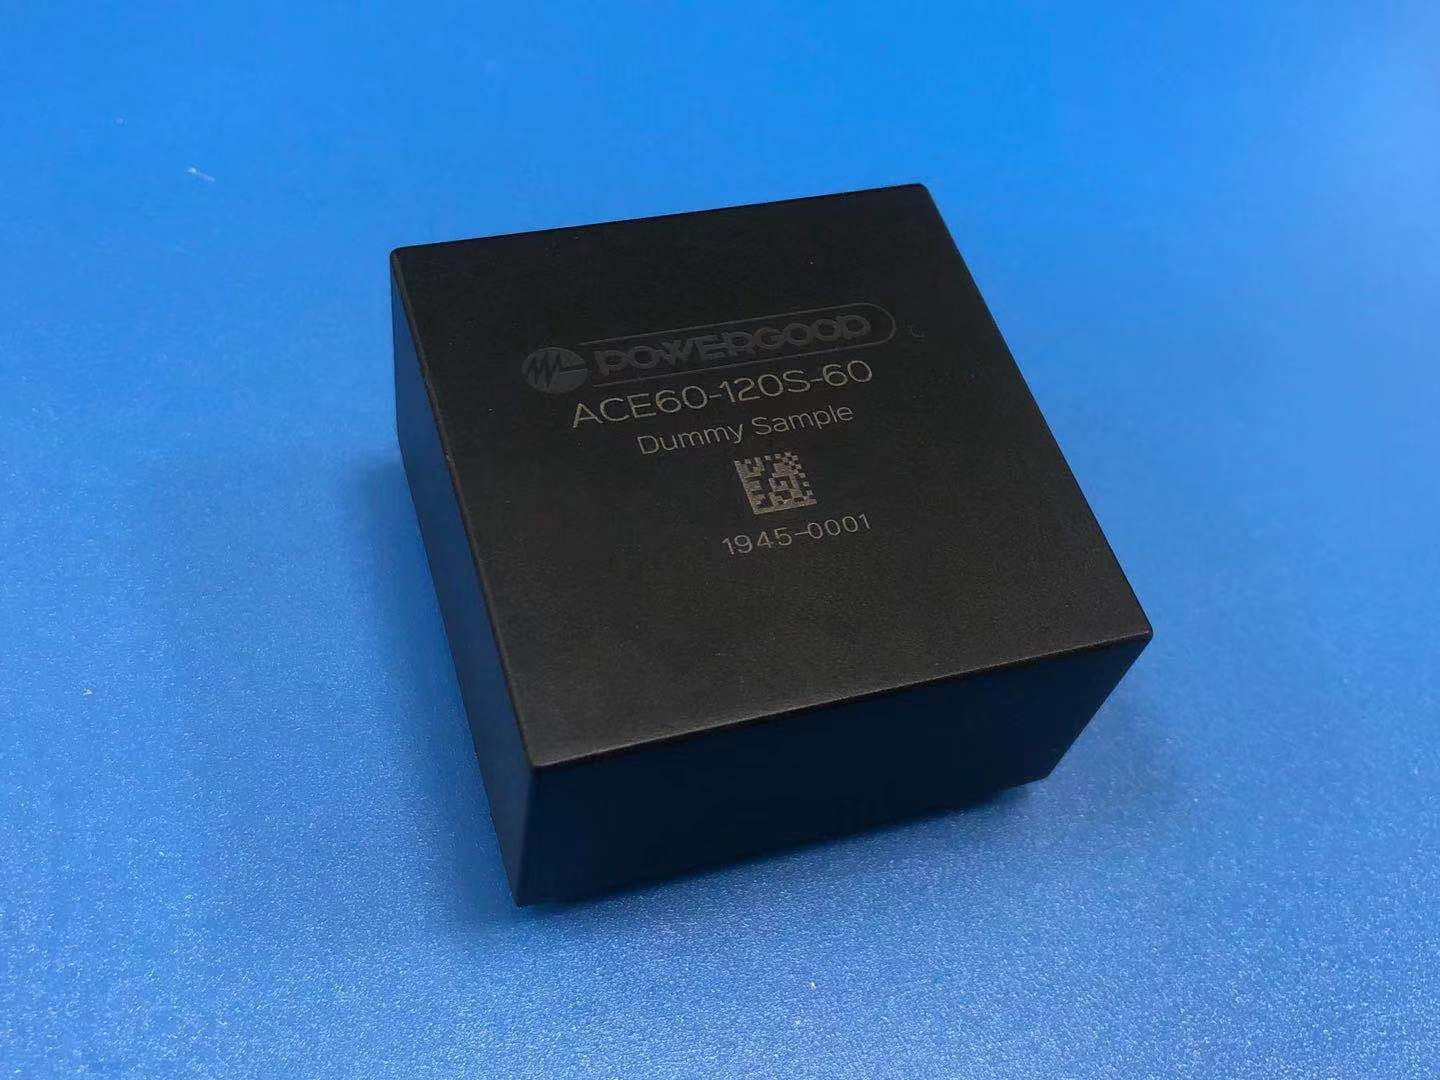 ACE60 Series - 2*2 compact size 60W AC DC module